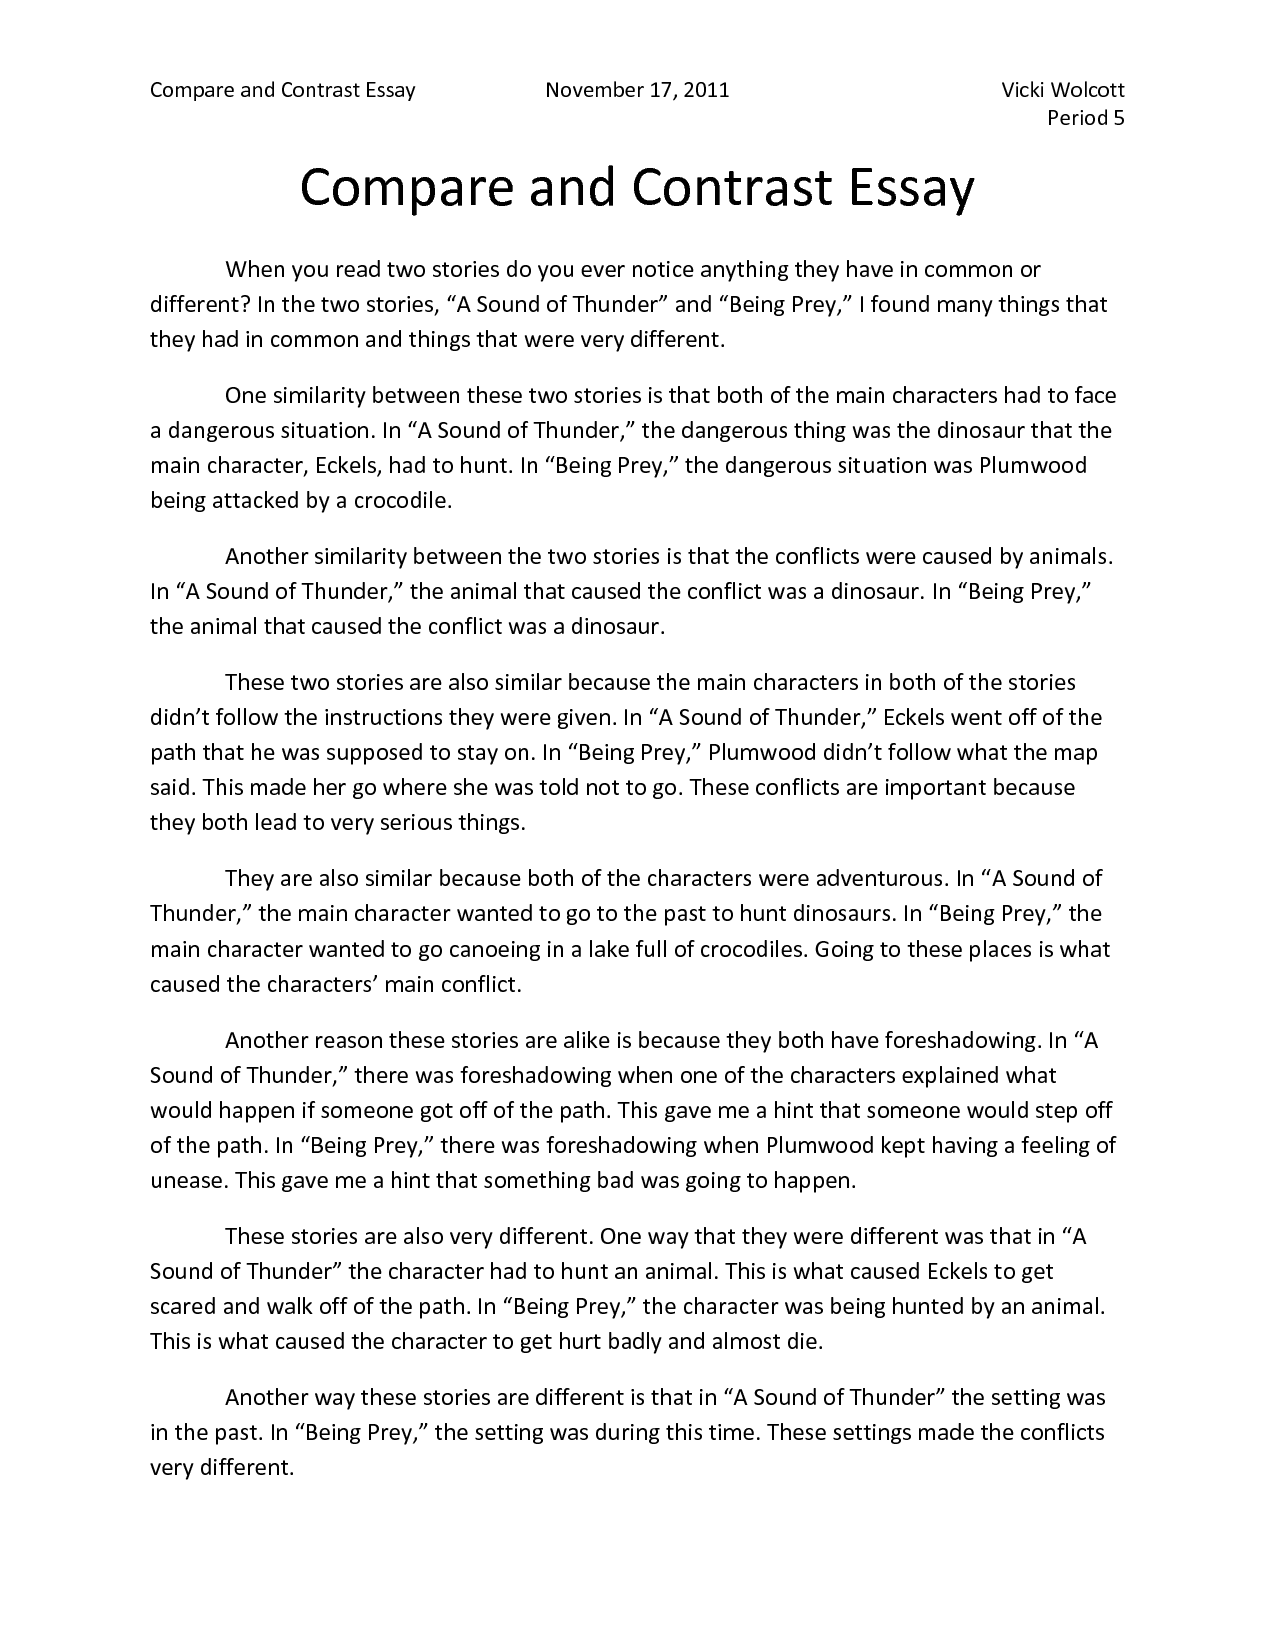 004 Essay Example Compare And Contrast Gallery Template Drawing Art Throughout College Examples Introduction Question Scholarship Free Edexcel Conclusion Frightening Topics Outline Doc Sample 4th Grade Full